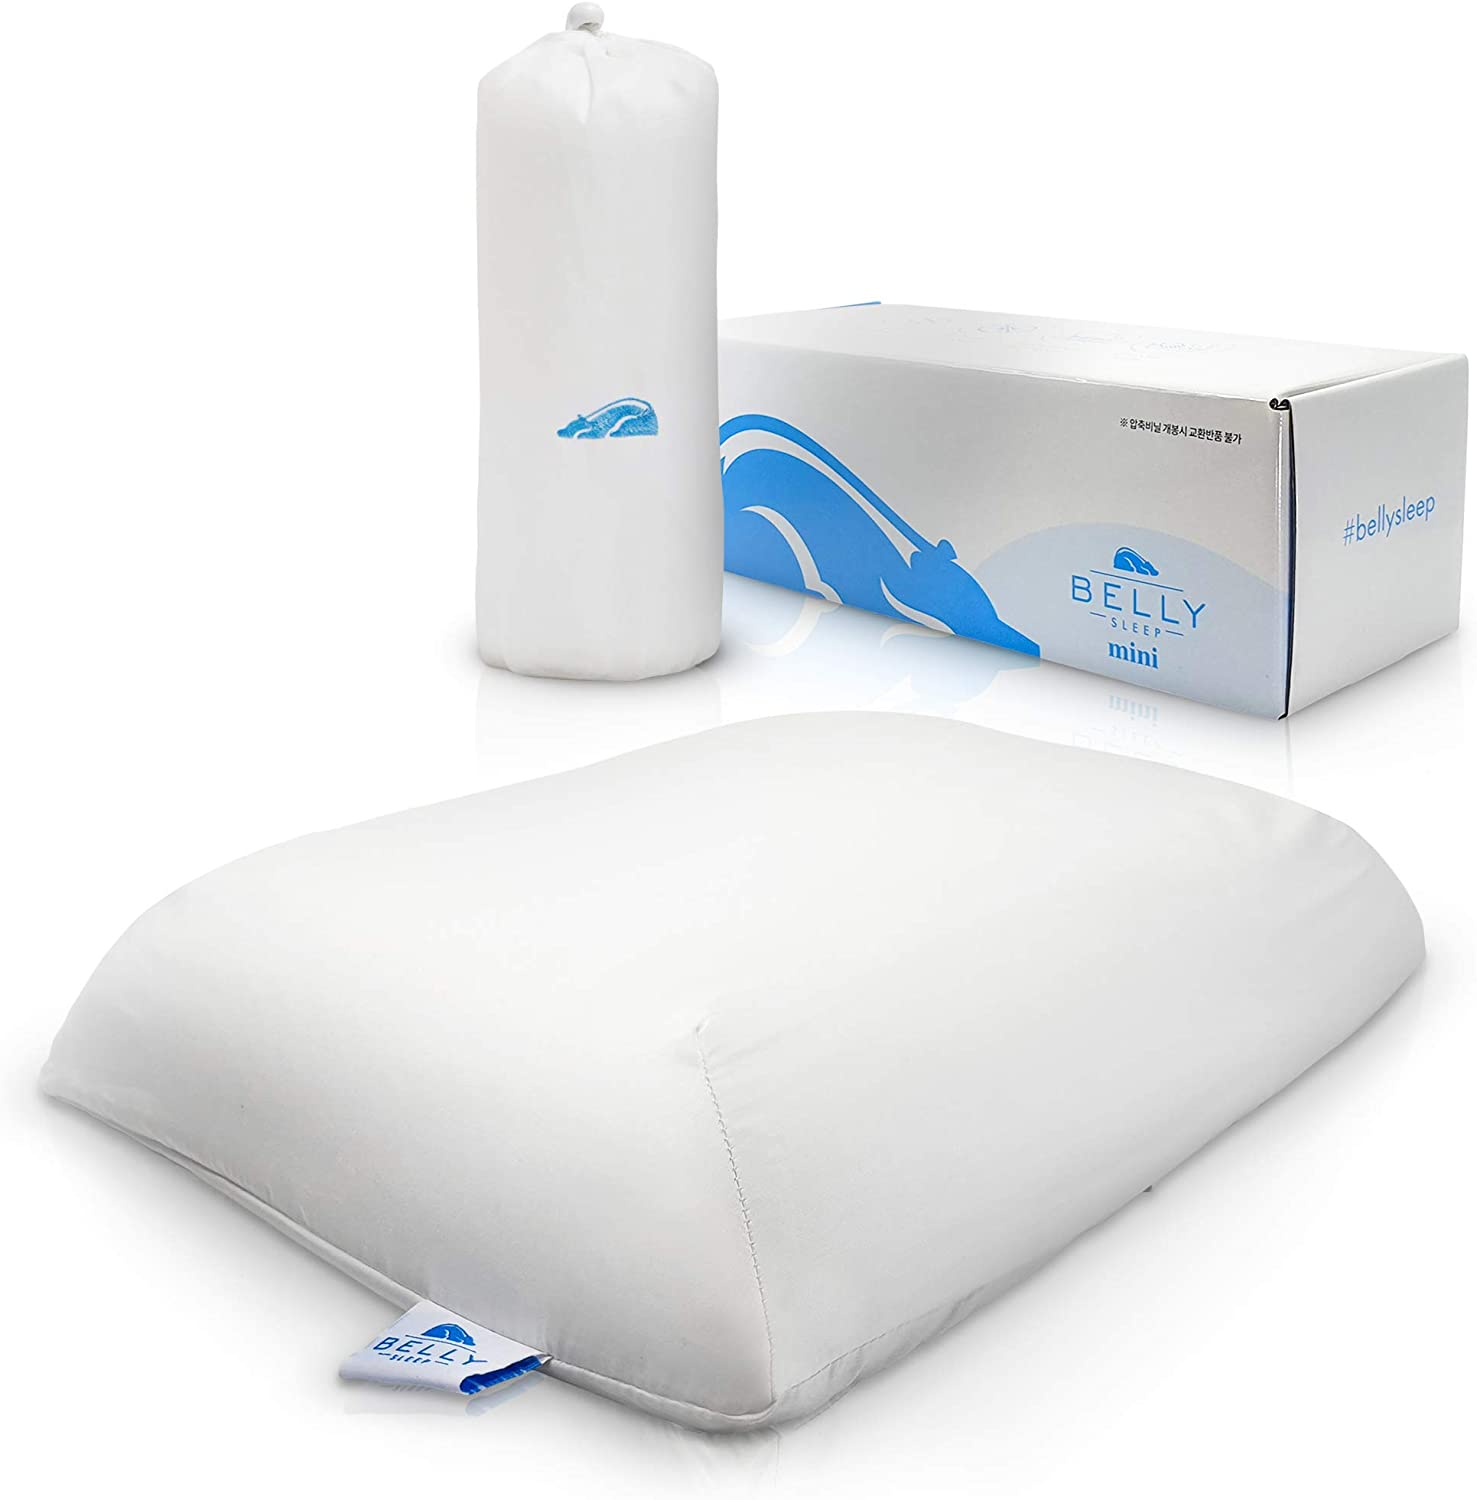 Reducing neck pain should always start with an assessment of your pillow. You much choose the best thick soft pillow for neck pain in 2020 to reduce neck pain and sleep comfortably.